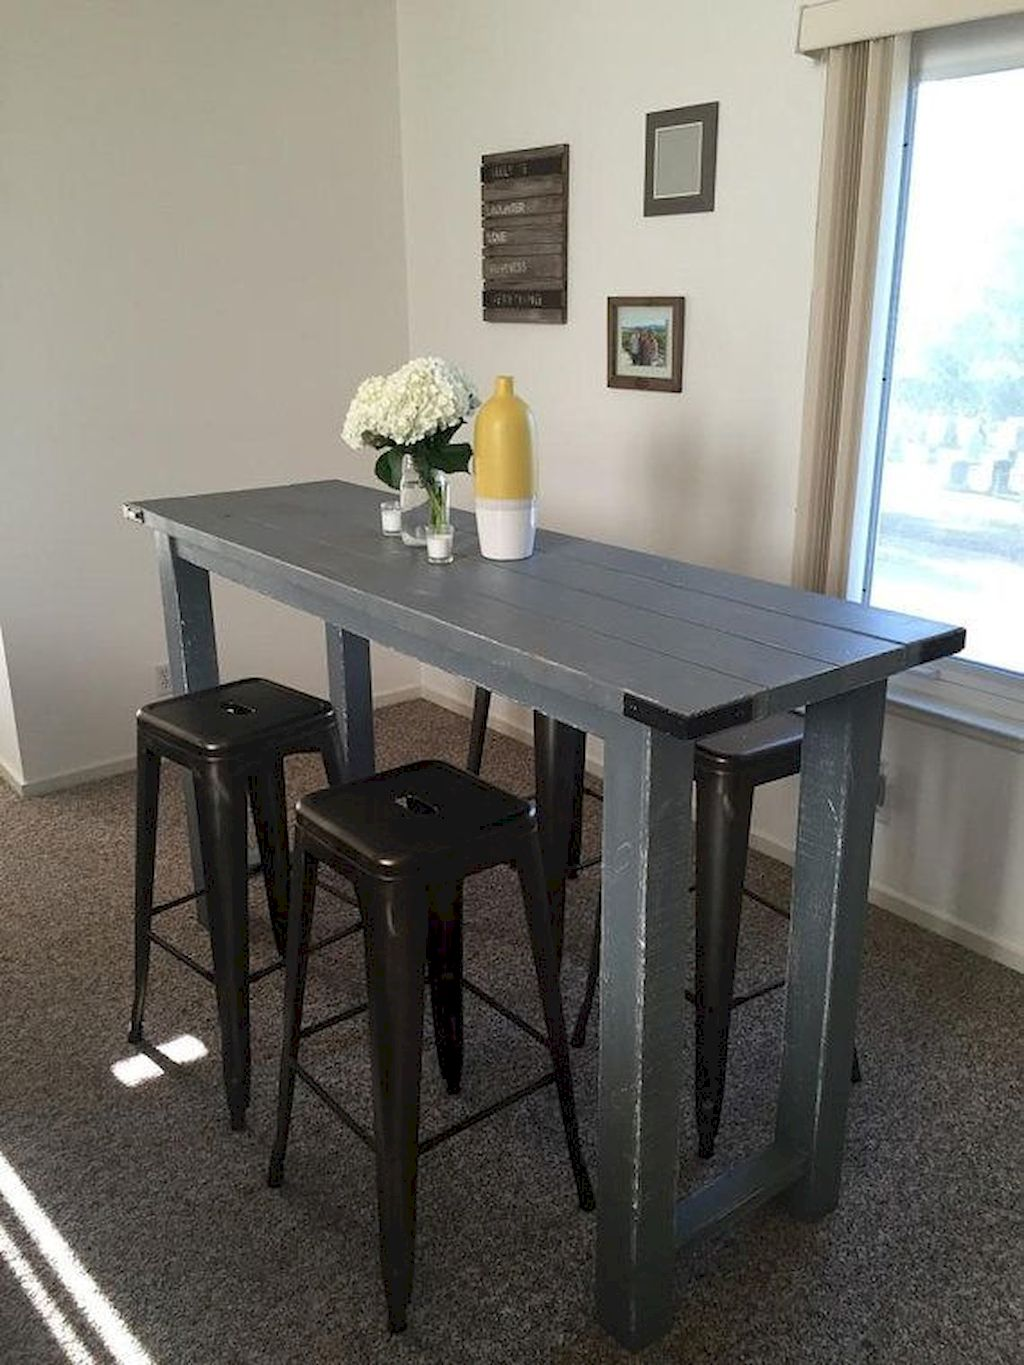 Small Island Kitchen Table068